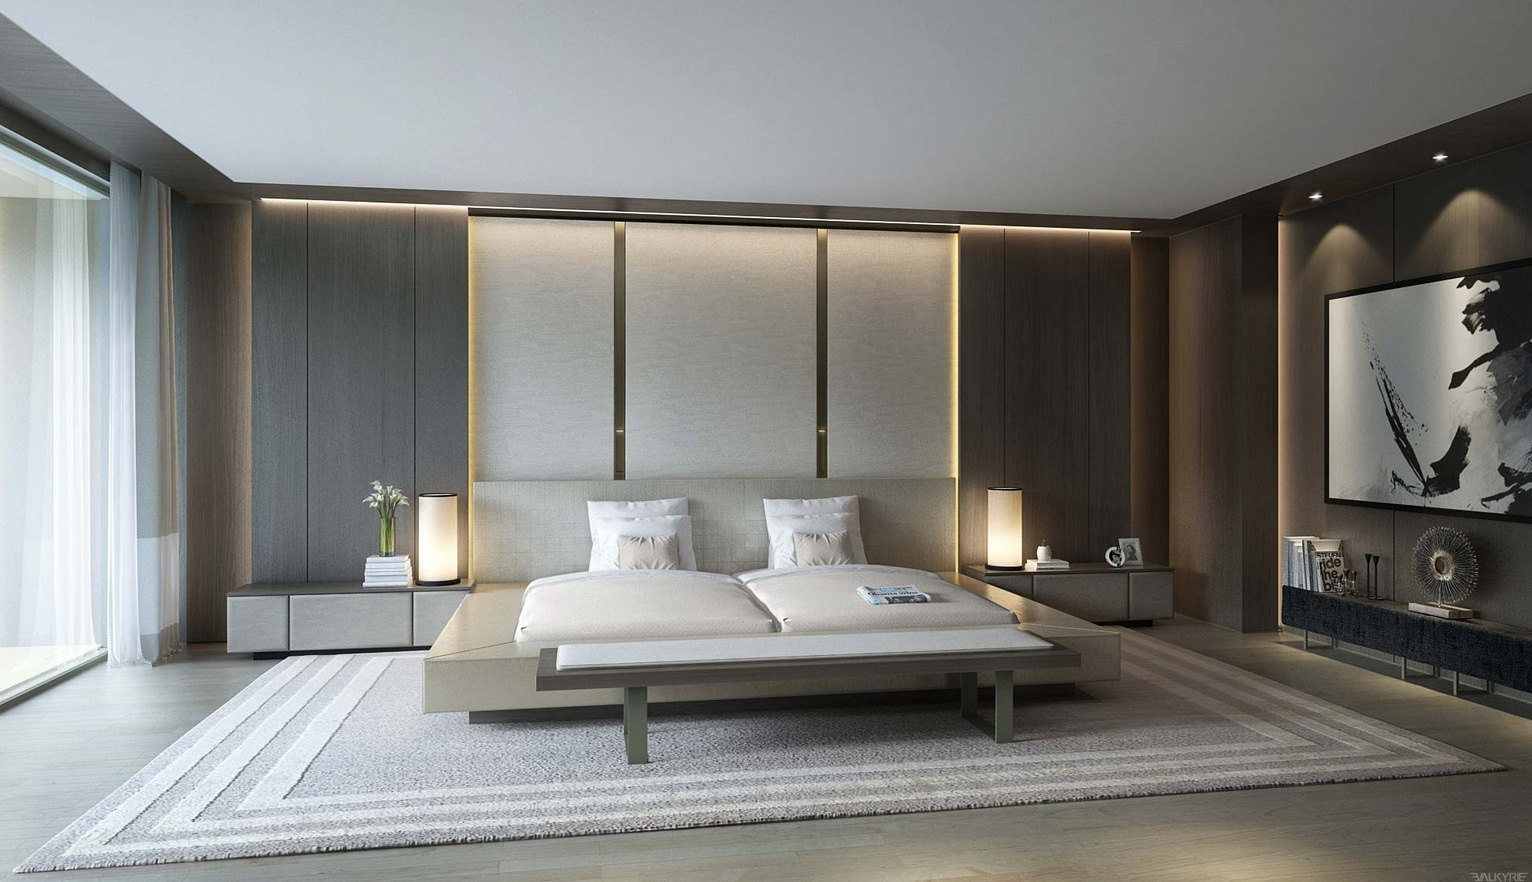 21 cool bedrooms for clean and simple design inspiration for Modern interior design inspiration